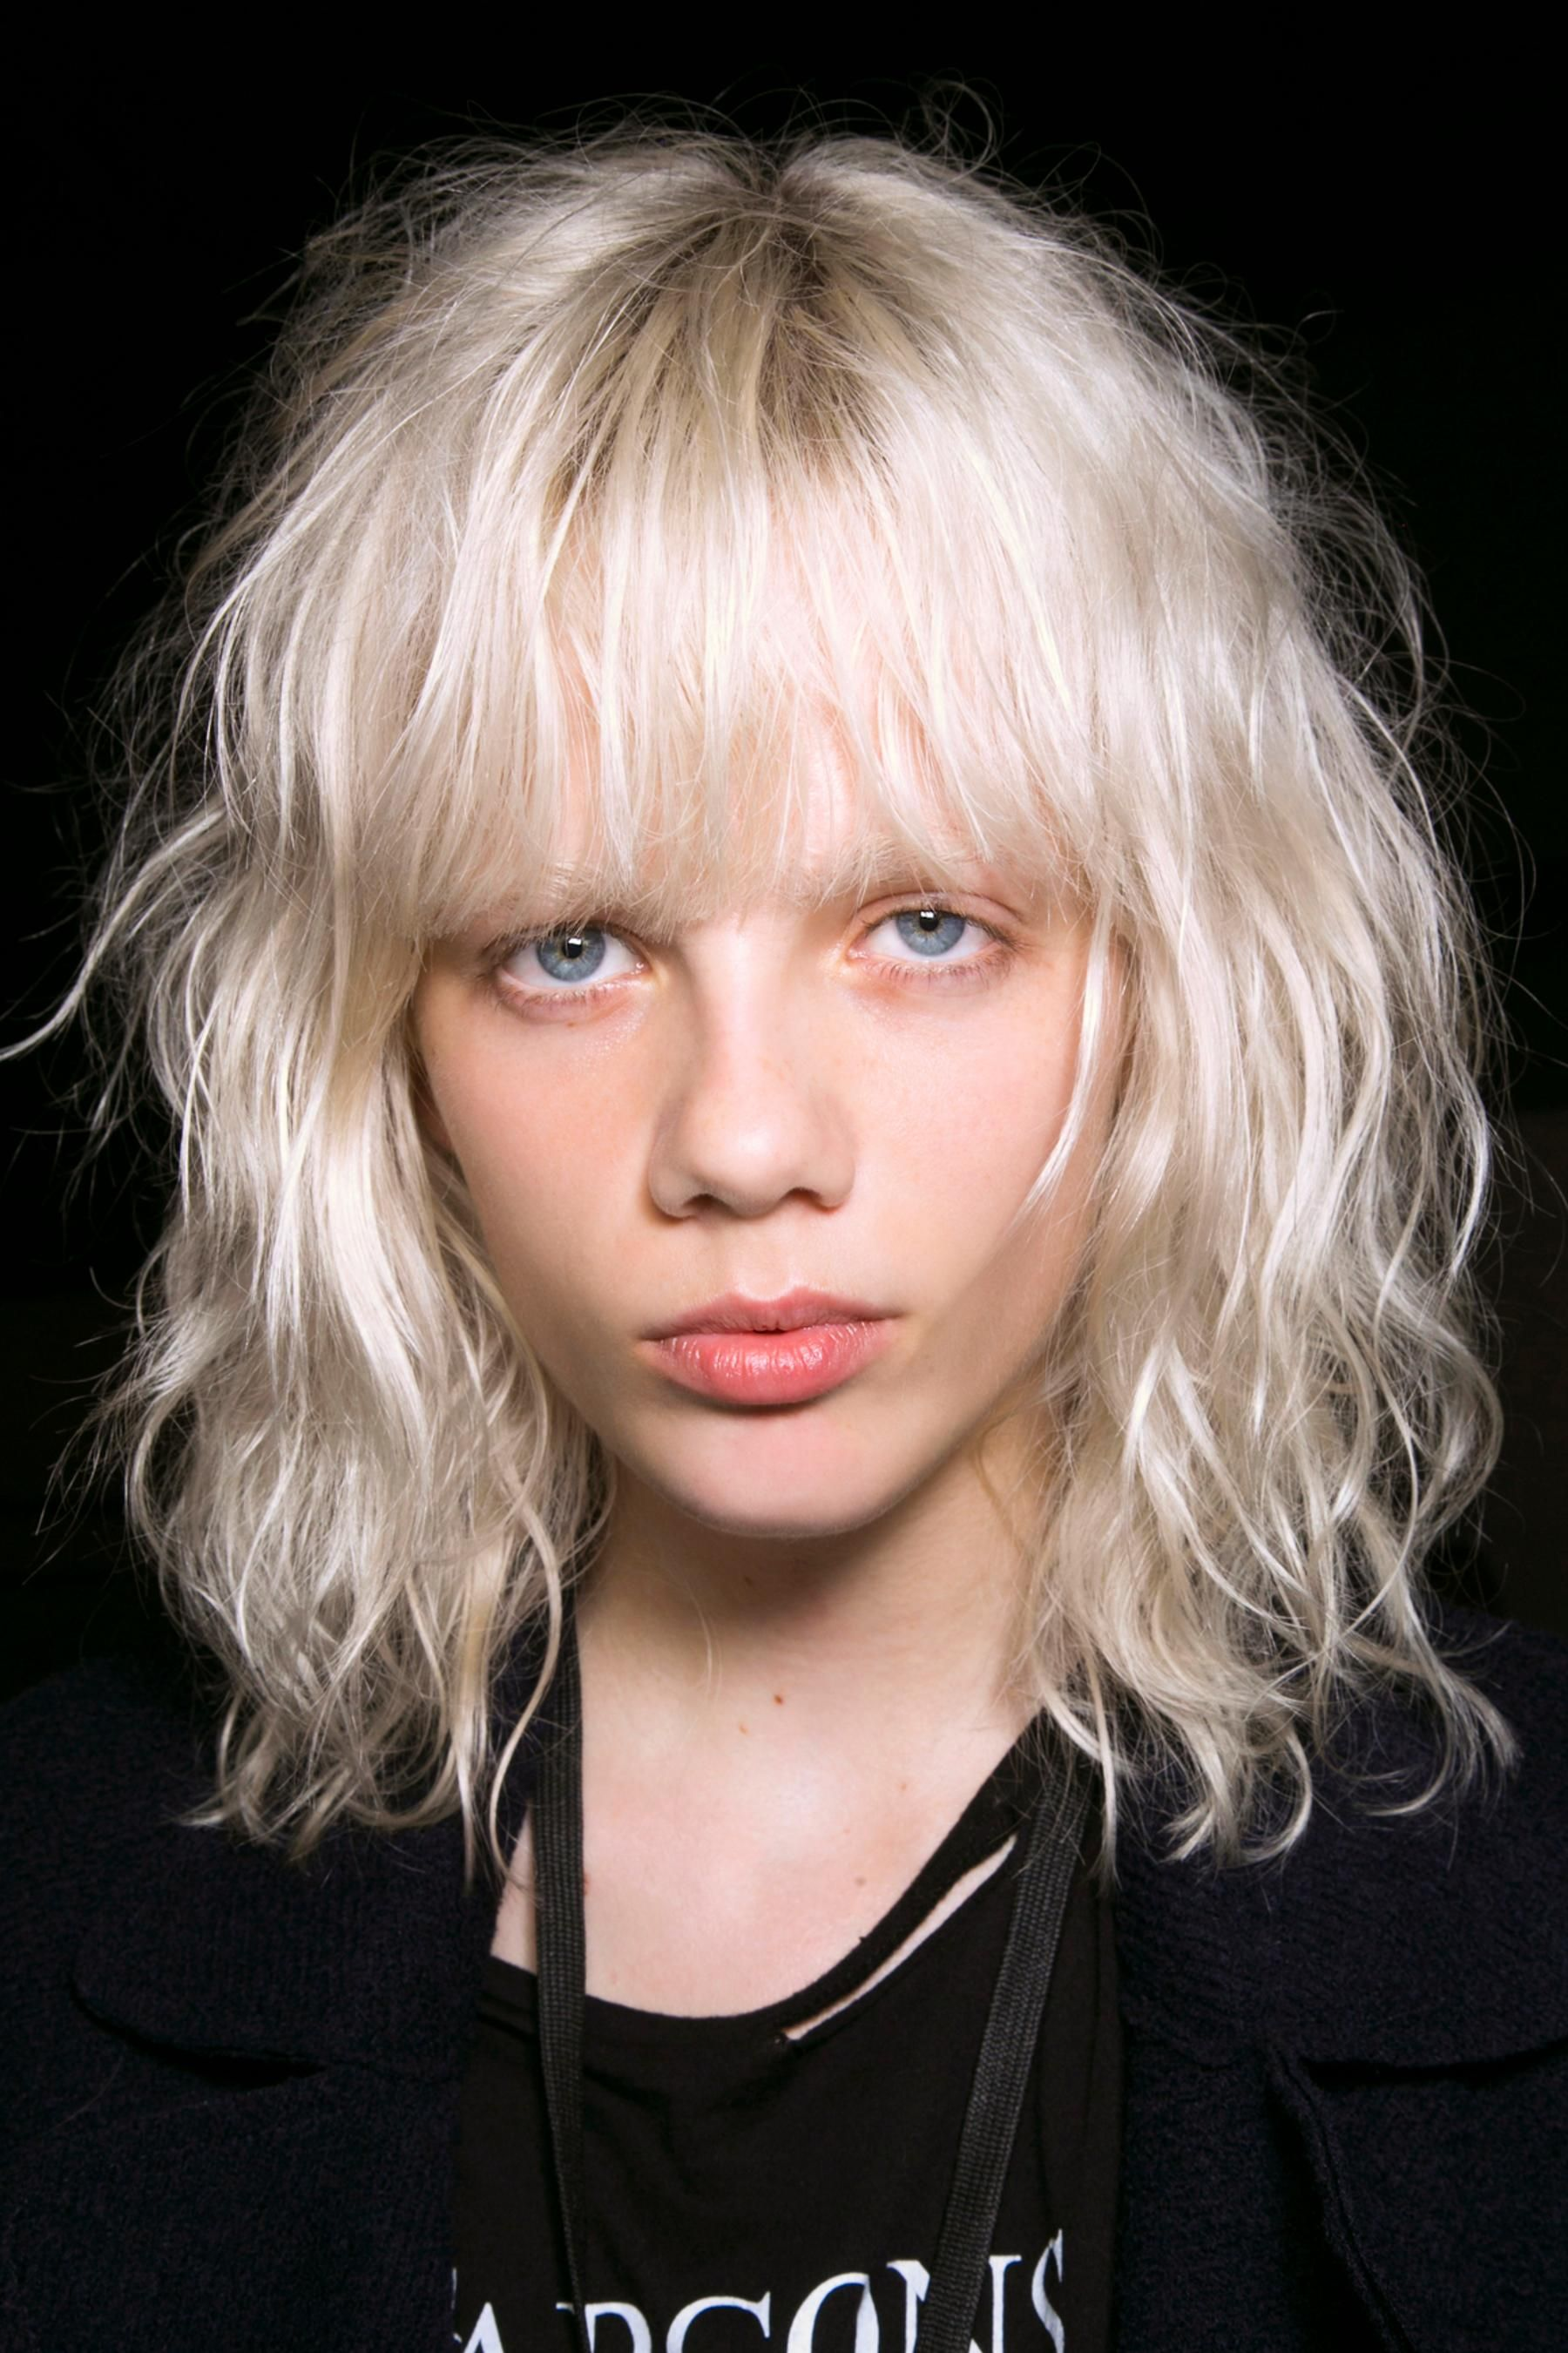 The Foolproof Way to Cut Your #Bangs, No Matter What Length They Are. Save some time and money with these quick tricks.